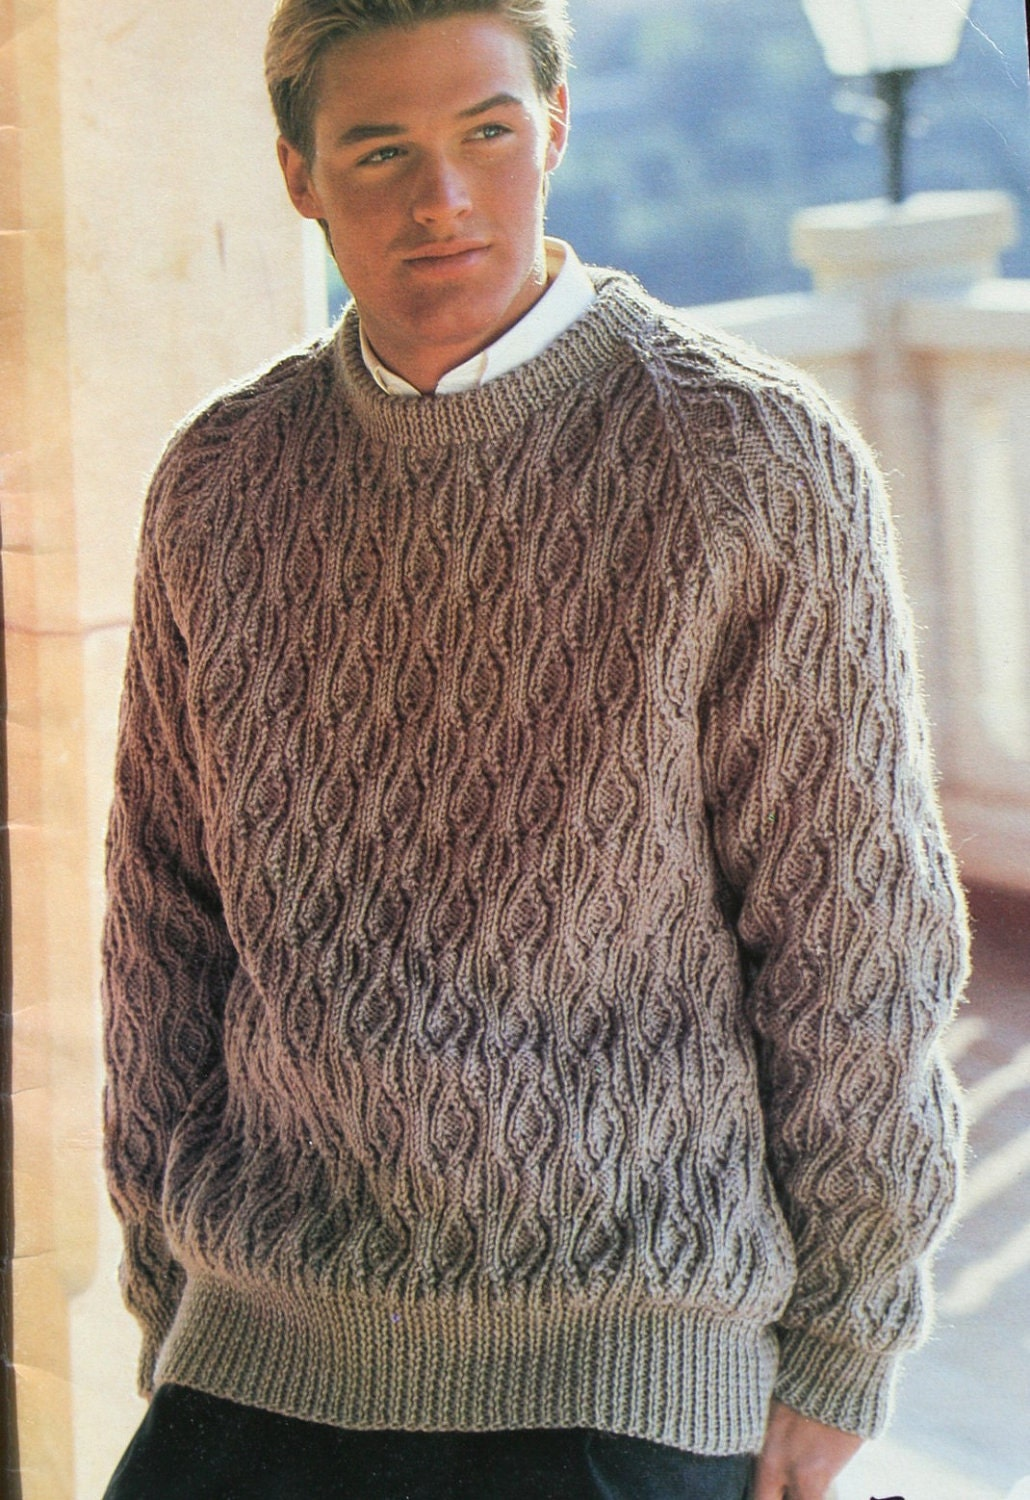 Hand Knitting Designs Sweaters For Men : Knitting patterns men his favourite knits patons by